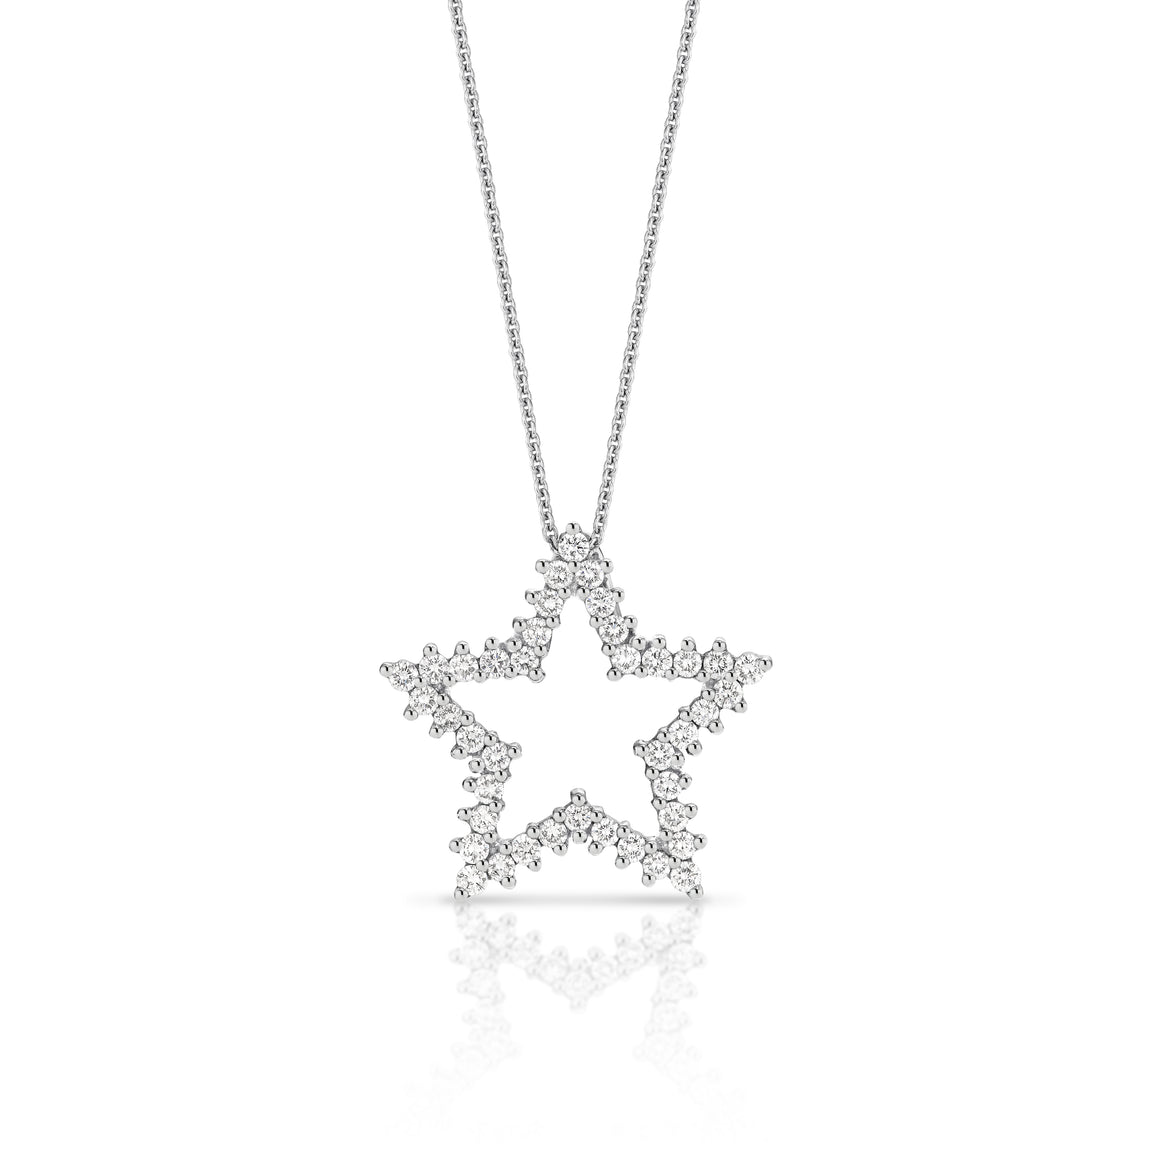 18ct White Gold Diamond Star Necklace - Gemma Stone  ABN:51 621 127 866